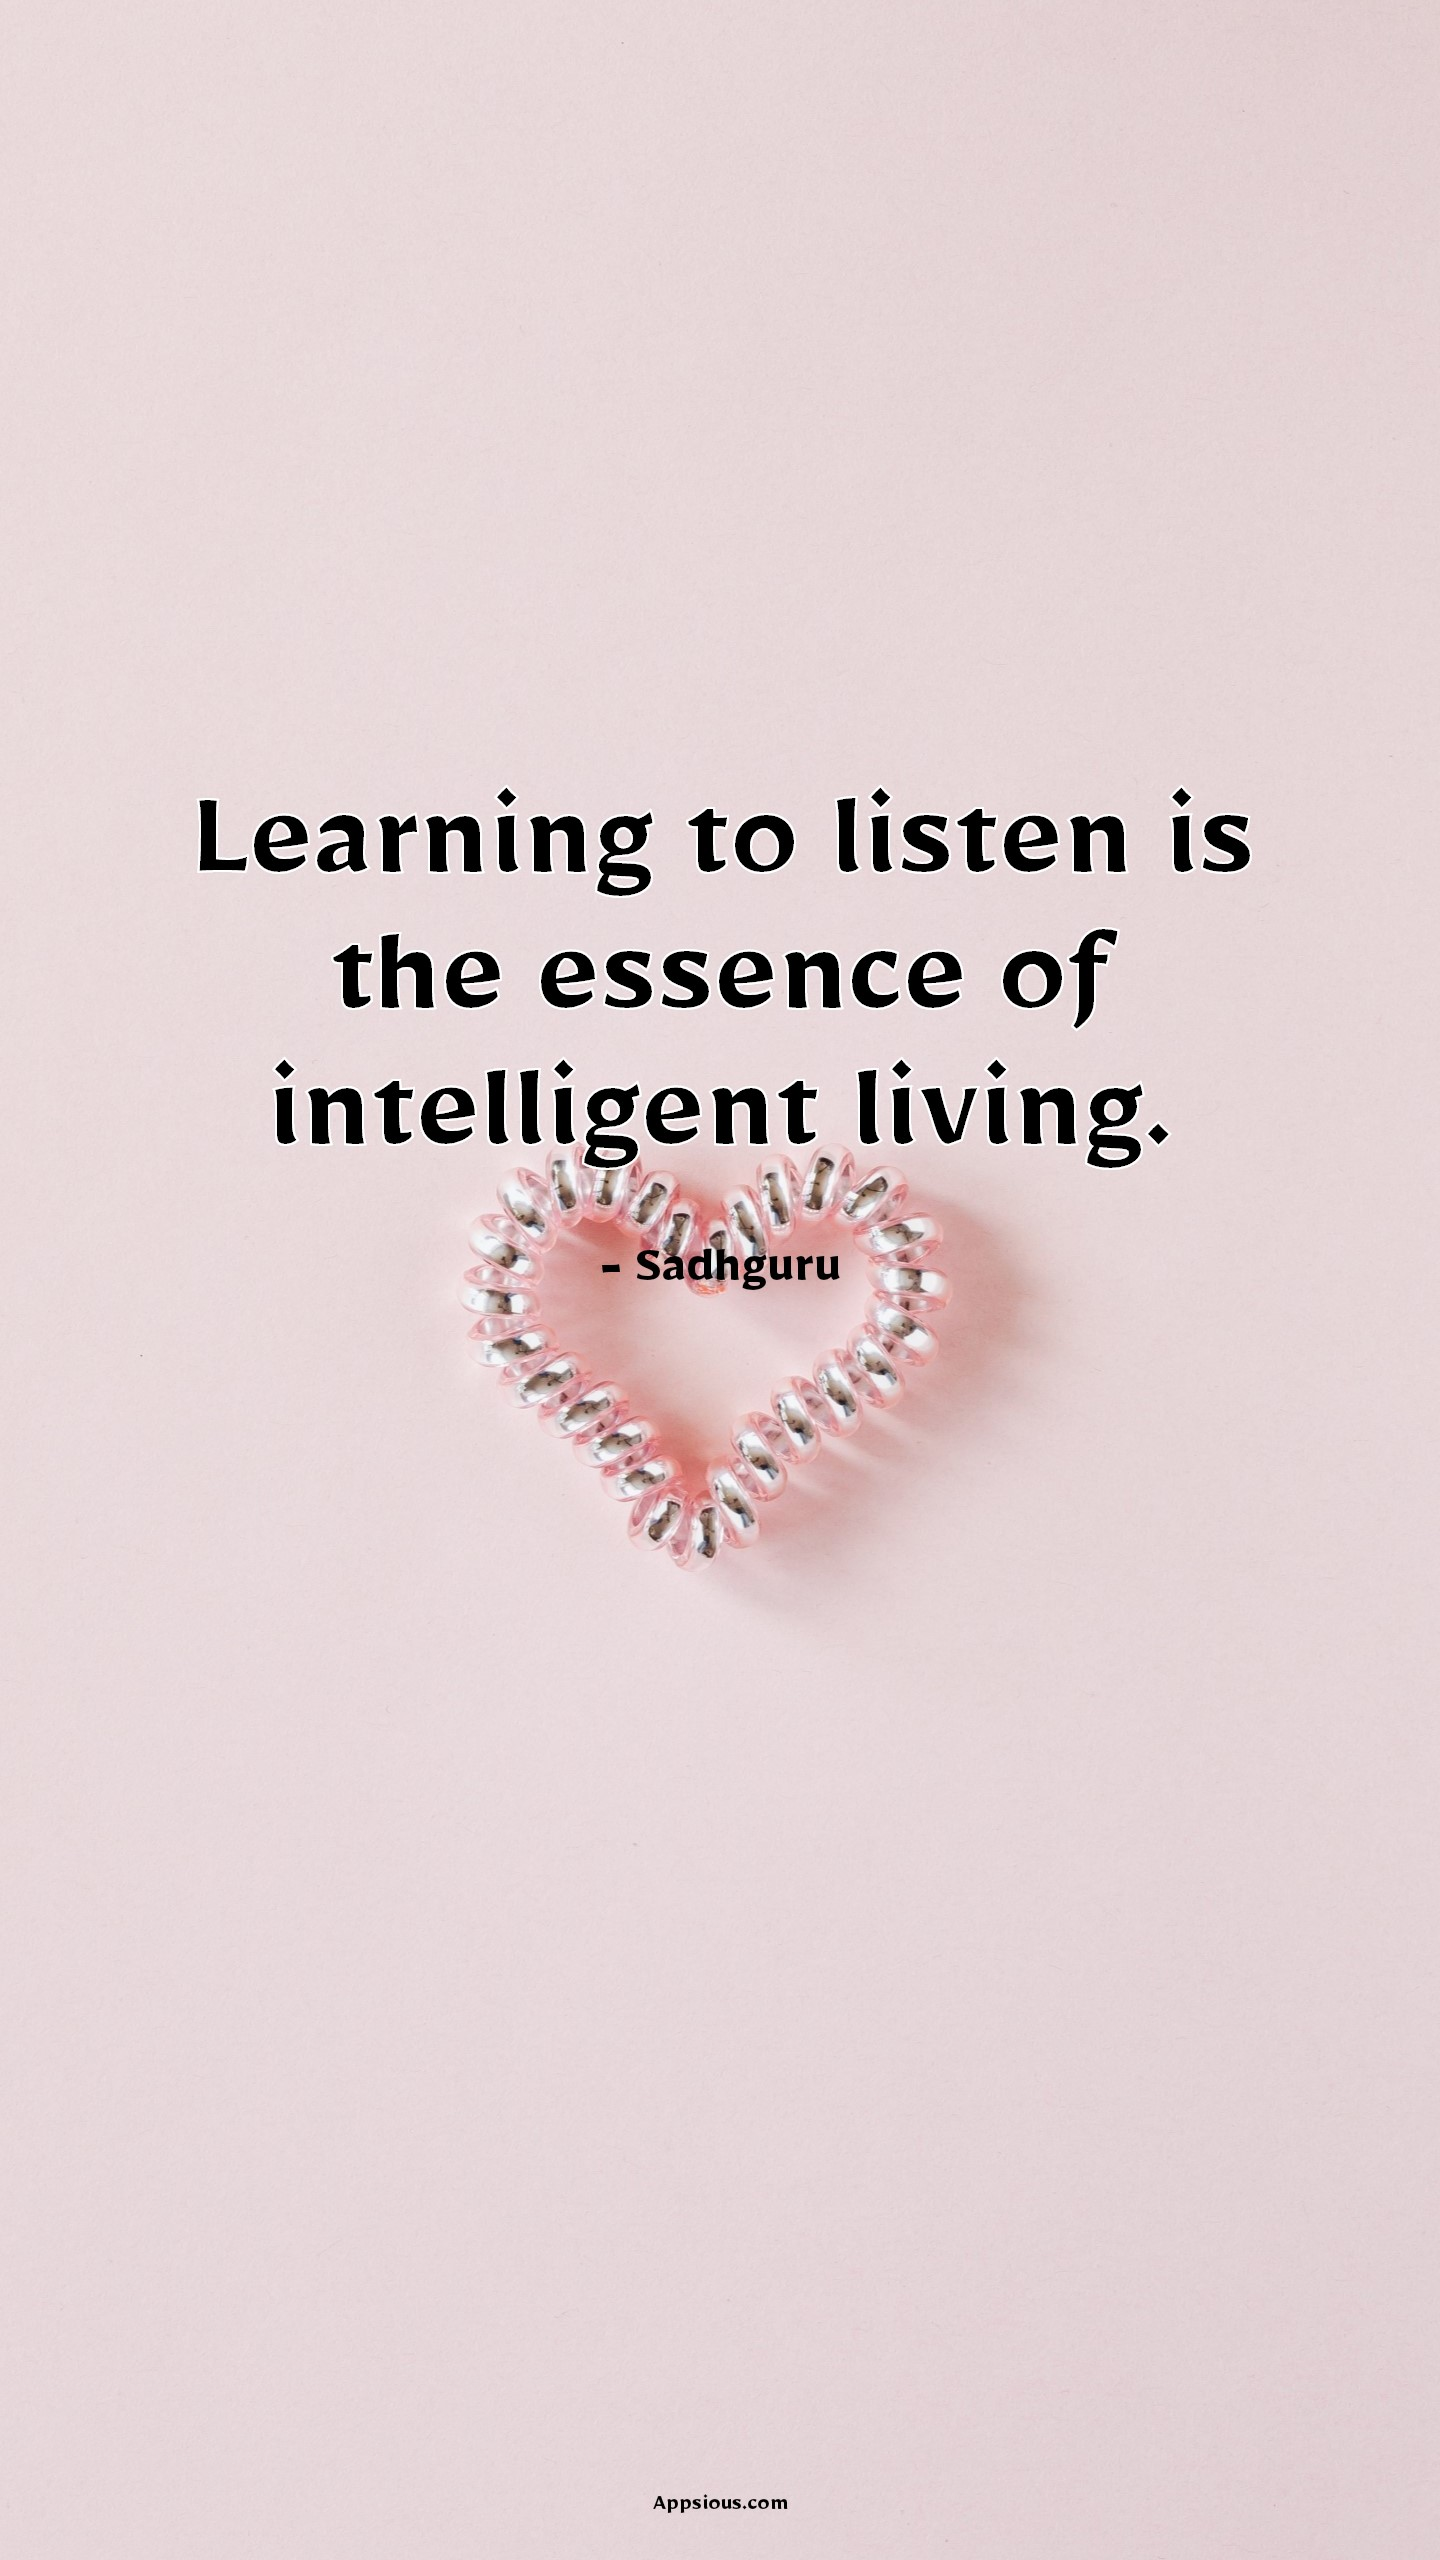 Learning to listen is the essence of intelligent living.